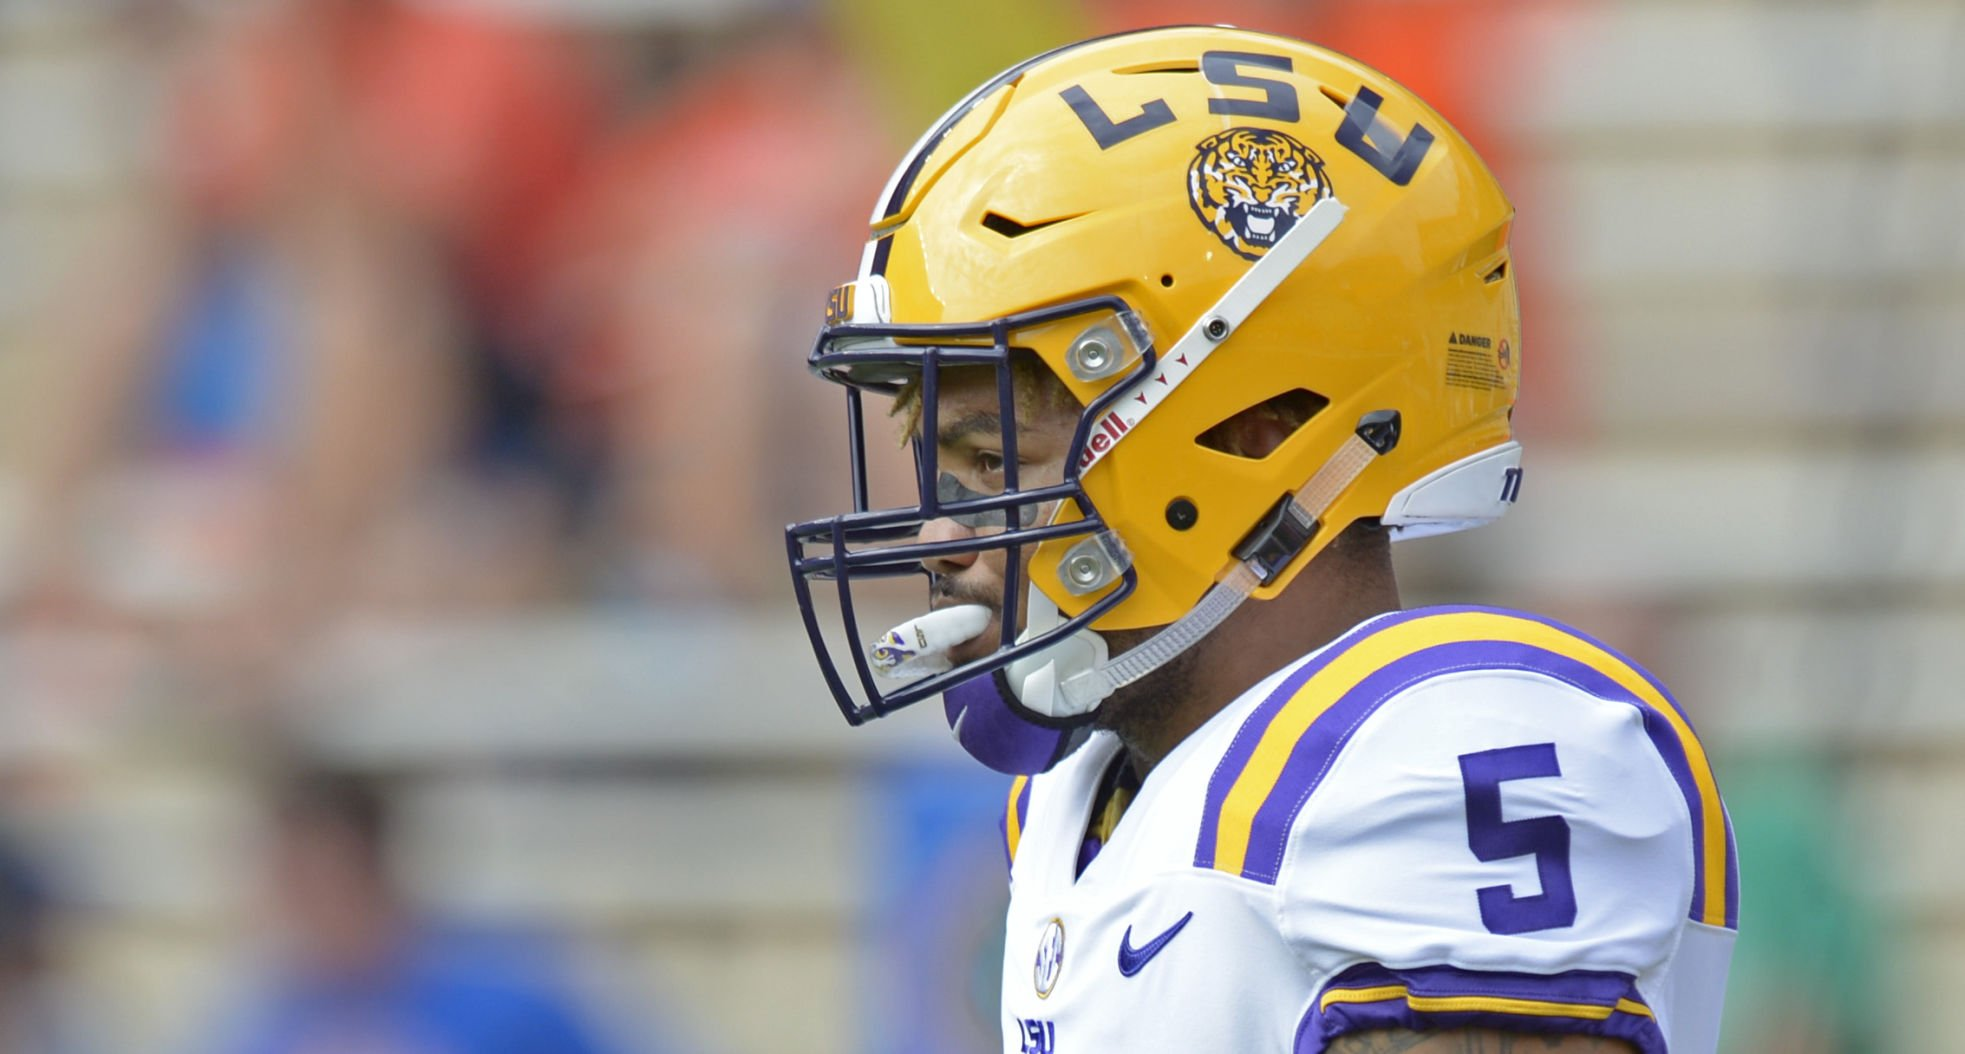 Florida's third-down defense was a surprising struggle against LSU